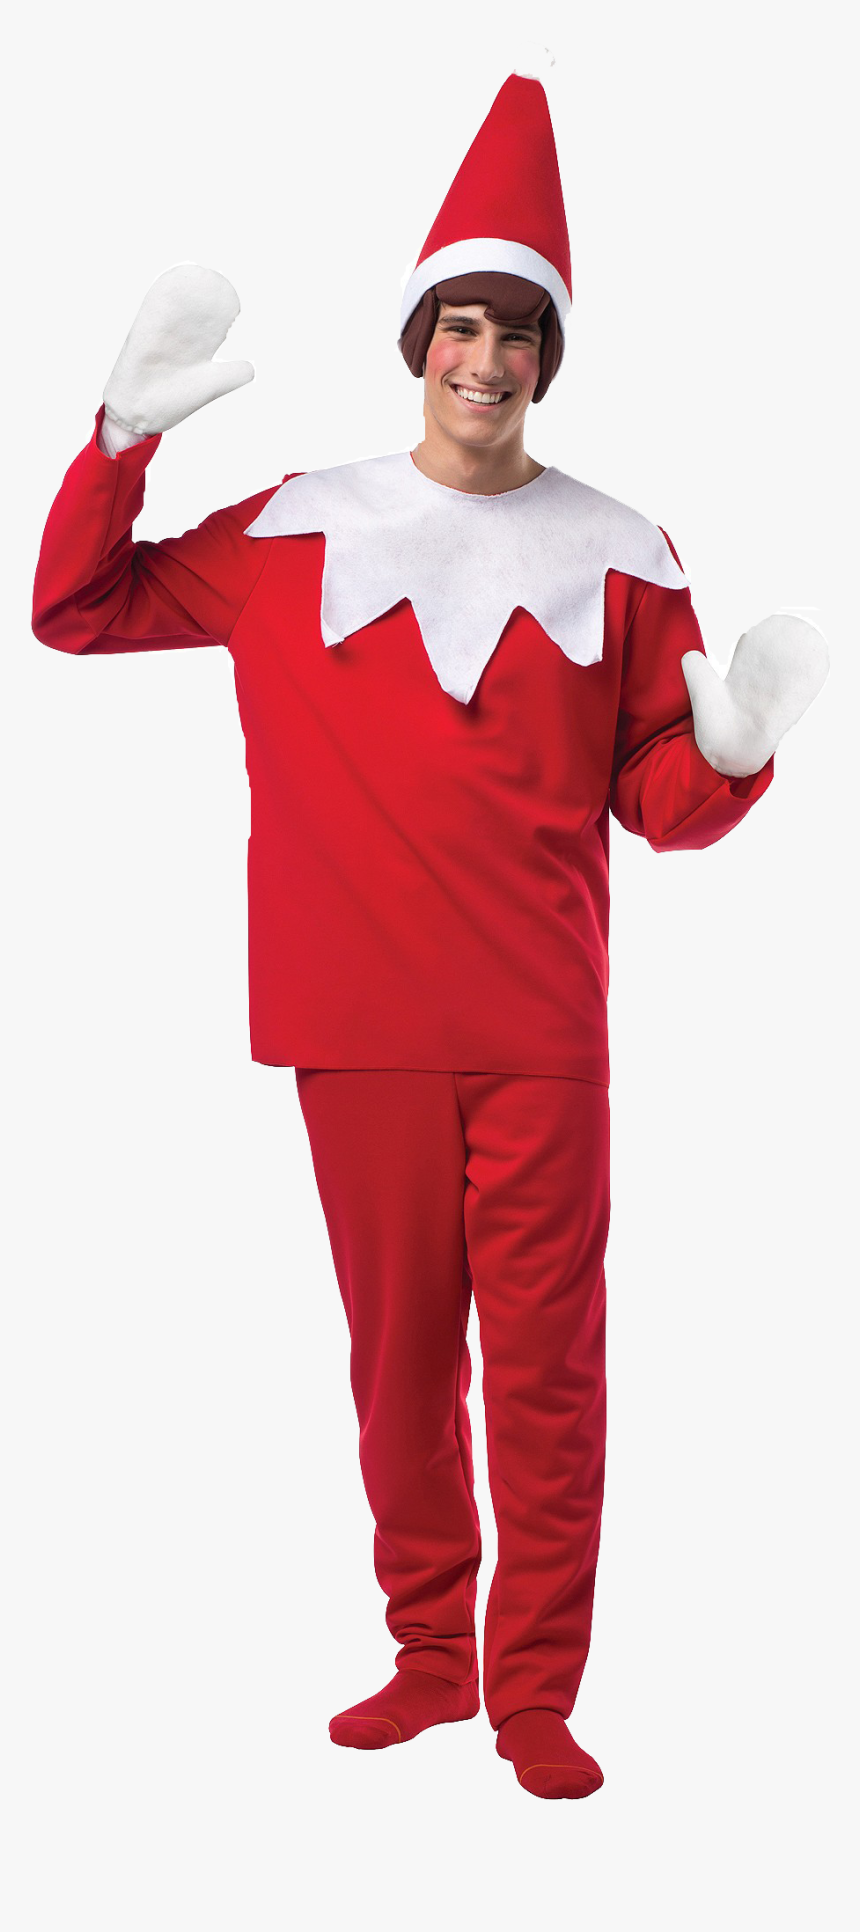 Christmas Dress Png Photo - Adult Elf On The Shelf Costume, Transparent Png, Free Download